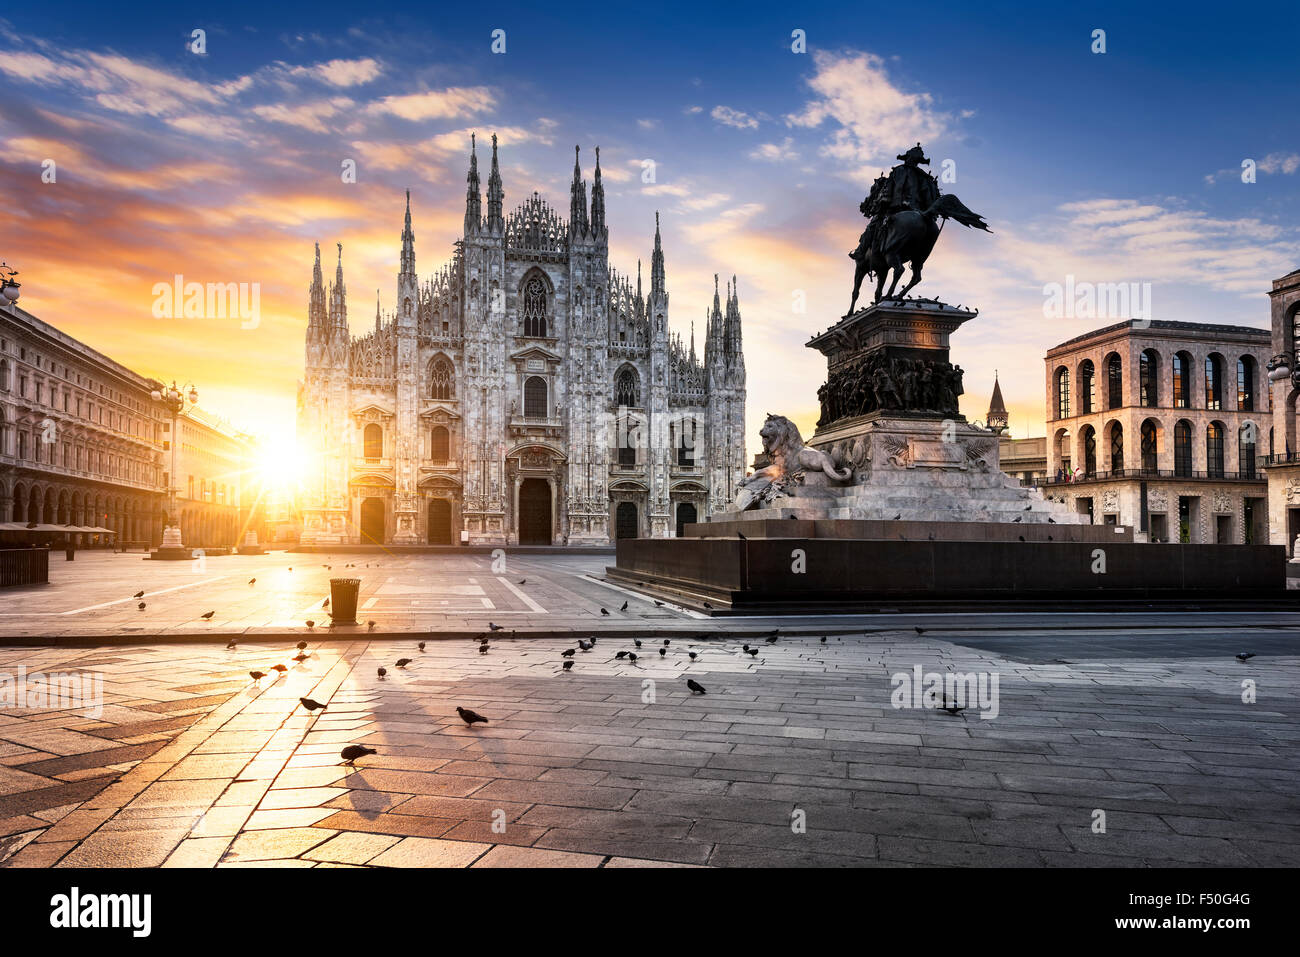 Duomo at sunrise, Milan, Europe. - Stock Image